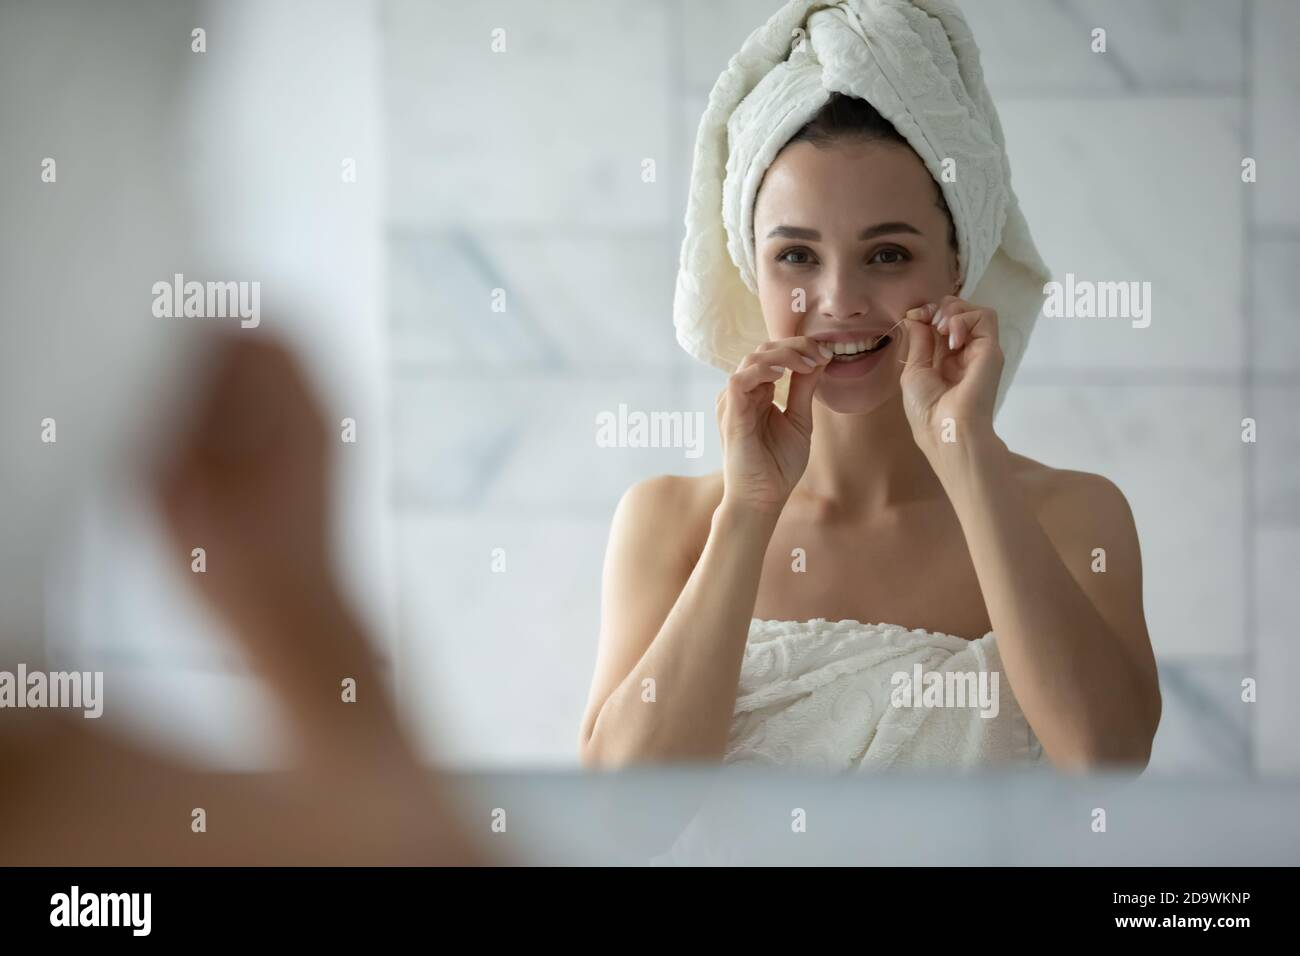 Pleasant lady cleaning teeth with dental floss after morning shower Stock Photo